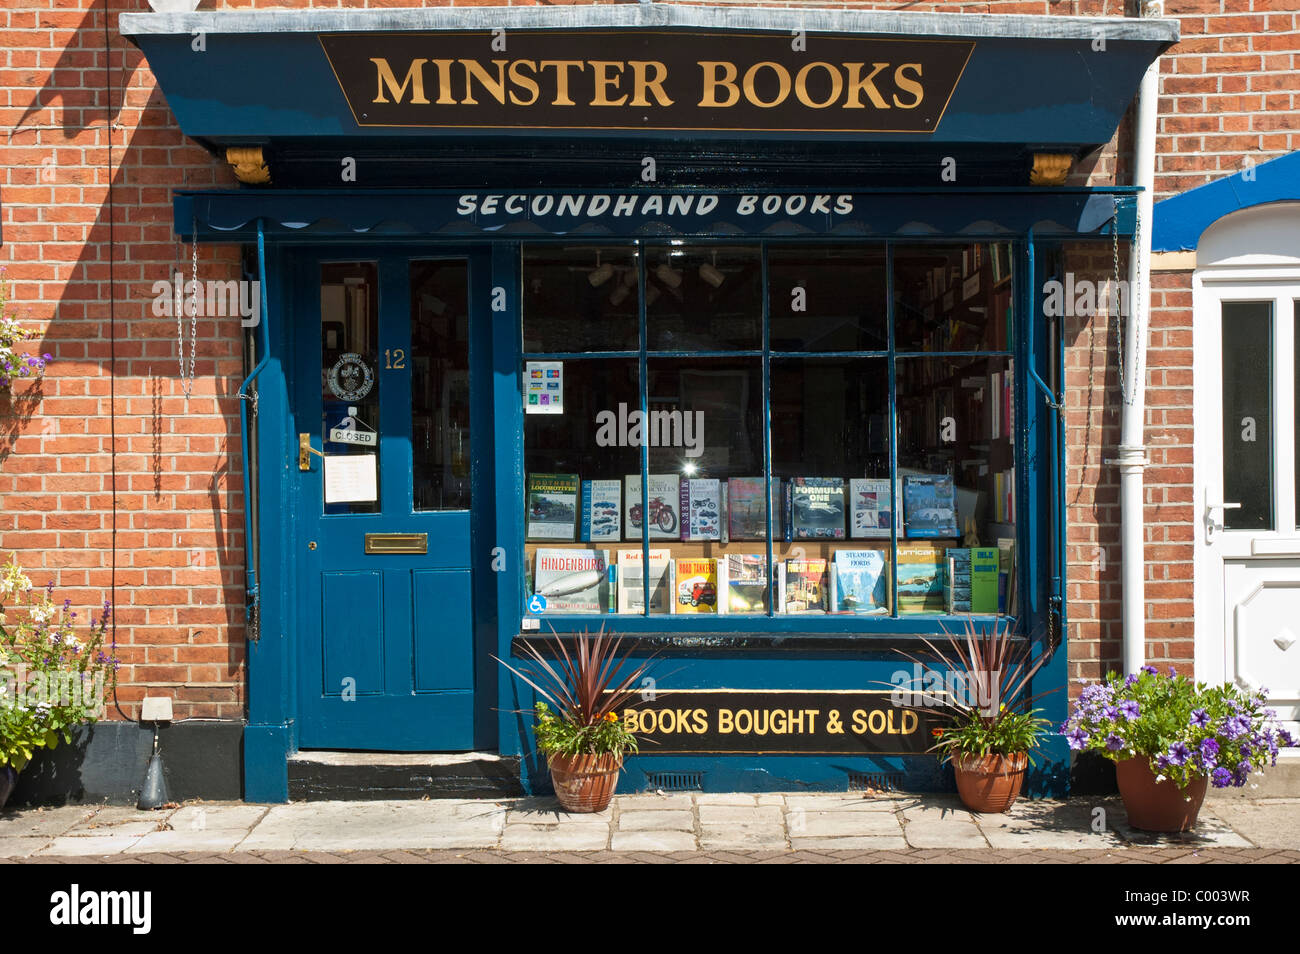 Secondhand Book Shop in Wimborne Minster town centre Dorset UK - Stock Image